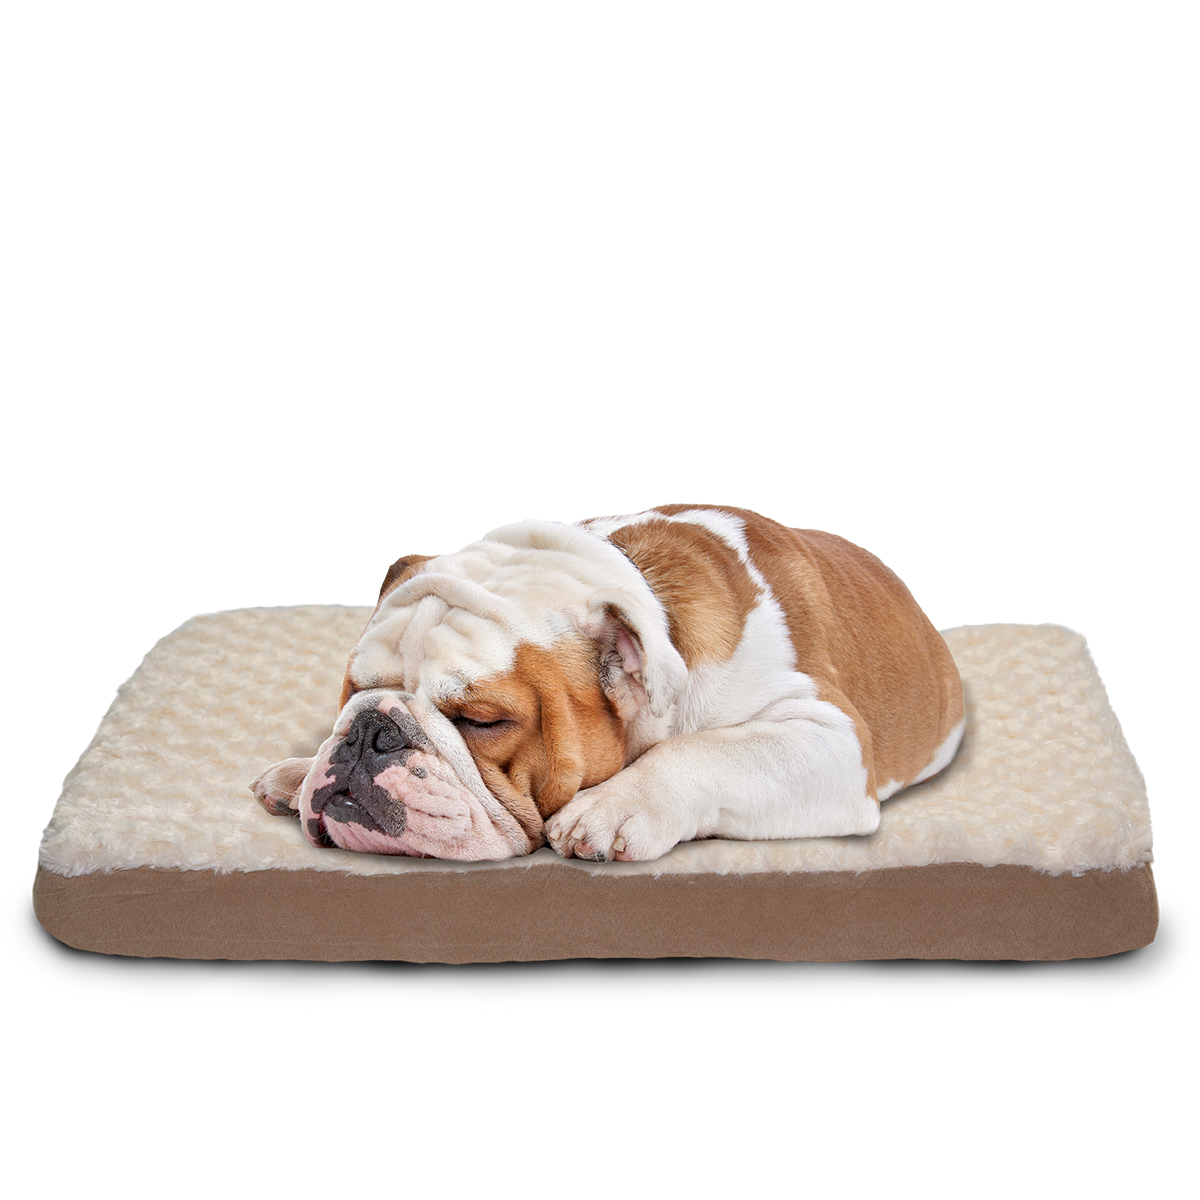 large dog bed plush pet mattress washable puppy cushion. Black Bedroom Furniture Sets. Home Design Ideas